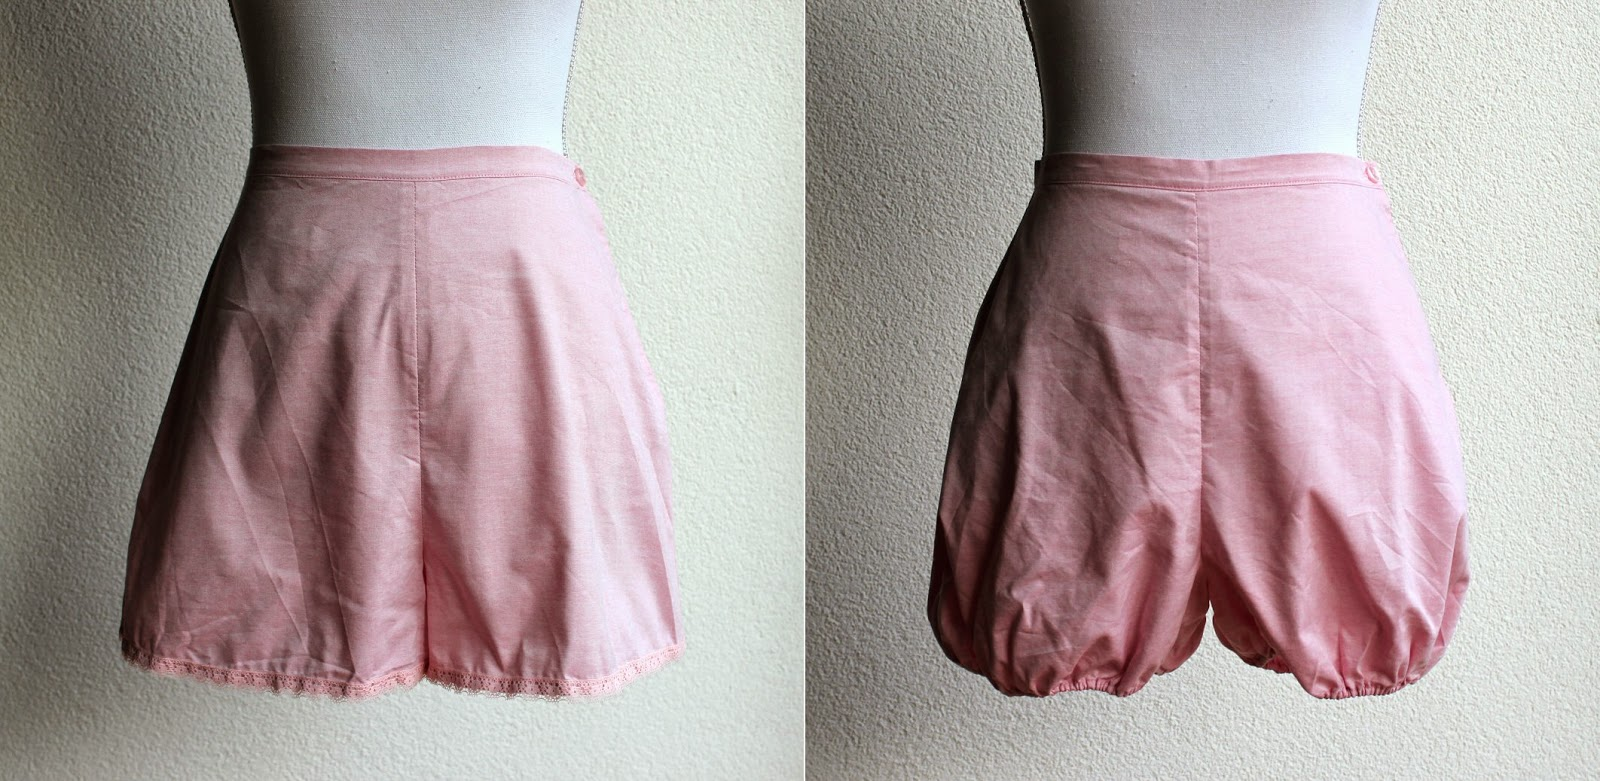 http://misshendrie.blogspot.nl/2014/07/1940s-knickers-and-mini-bloomers.html